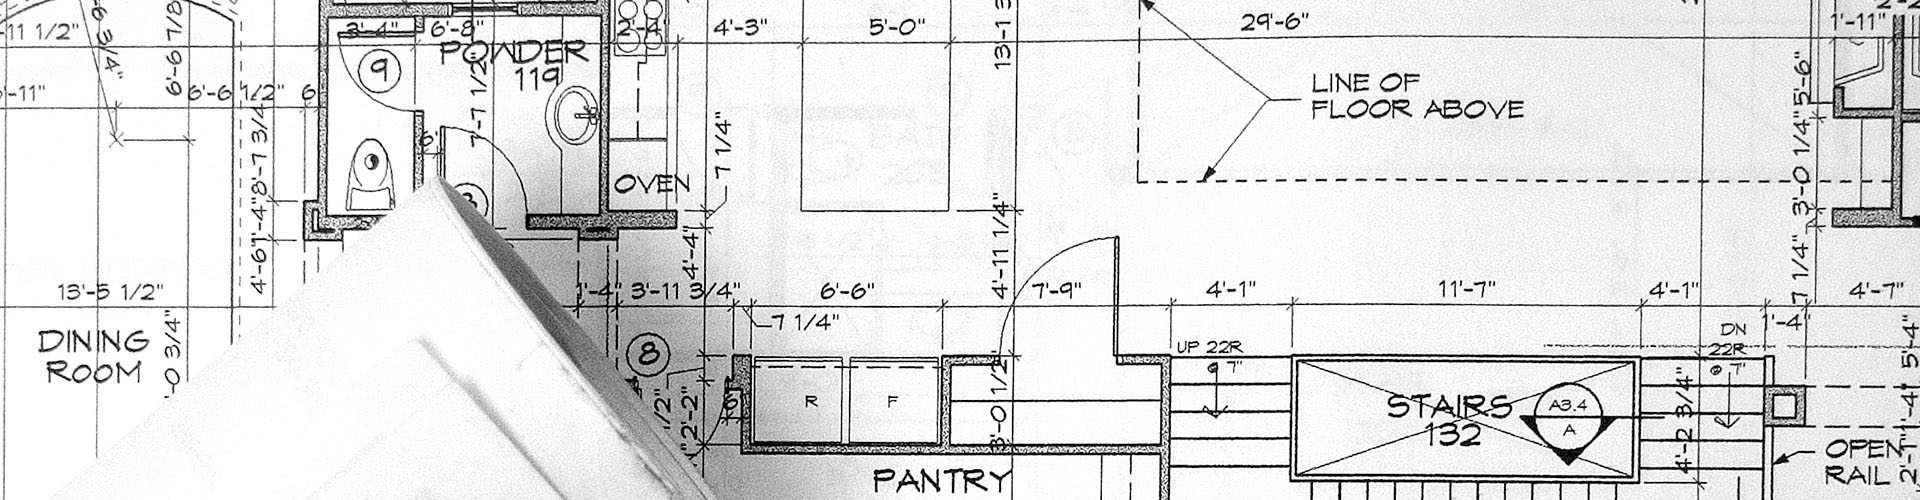 hight resolution of building permits boulder countyelectrical plan examiner 16